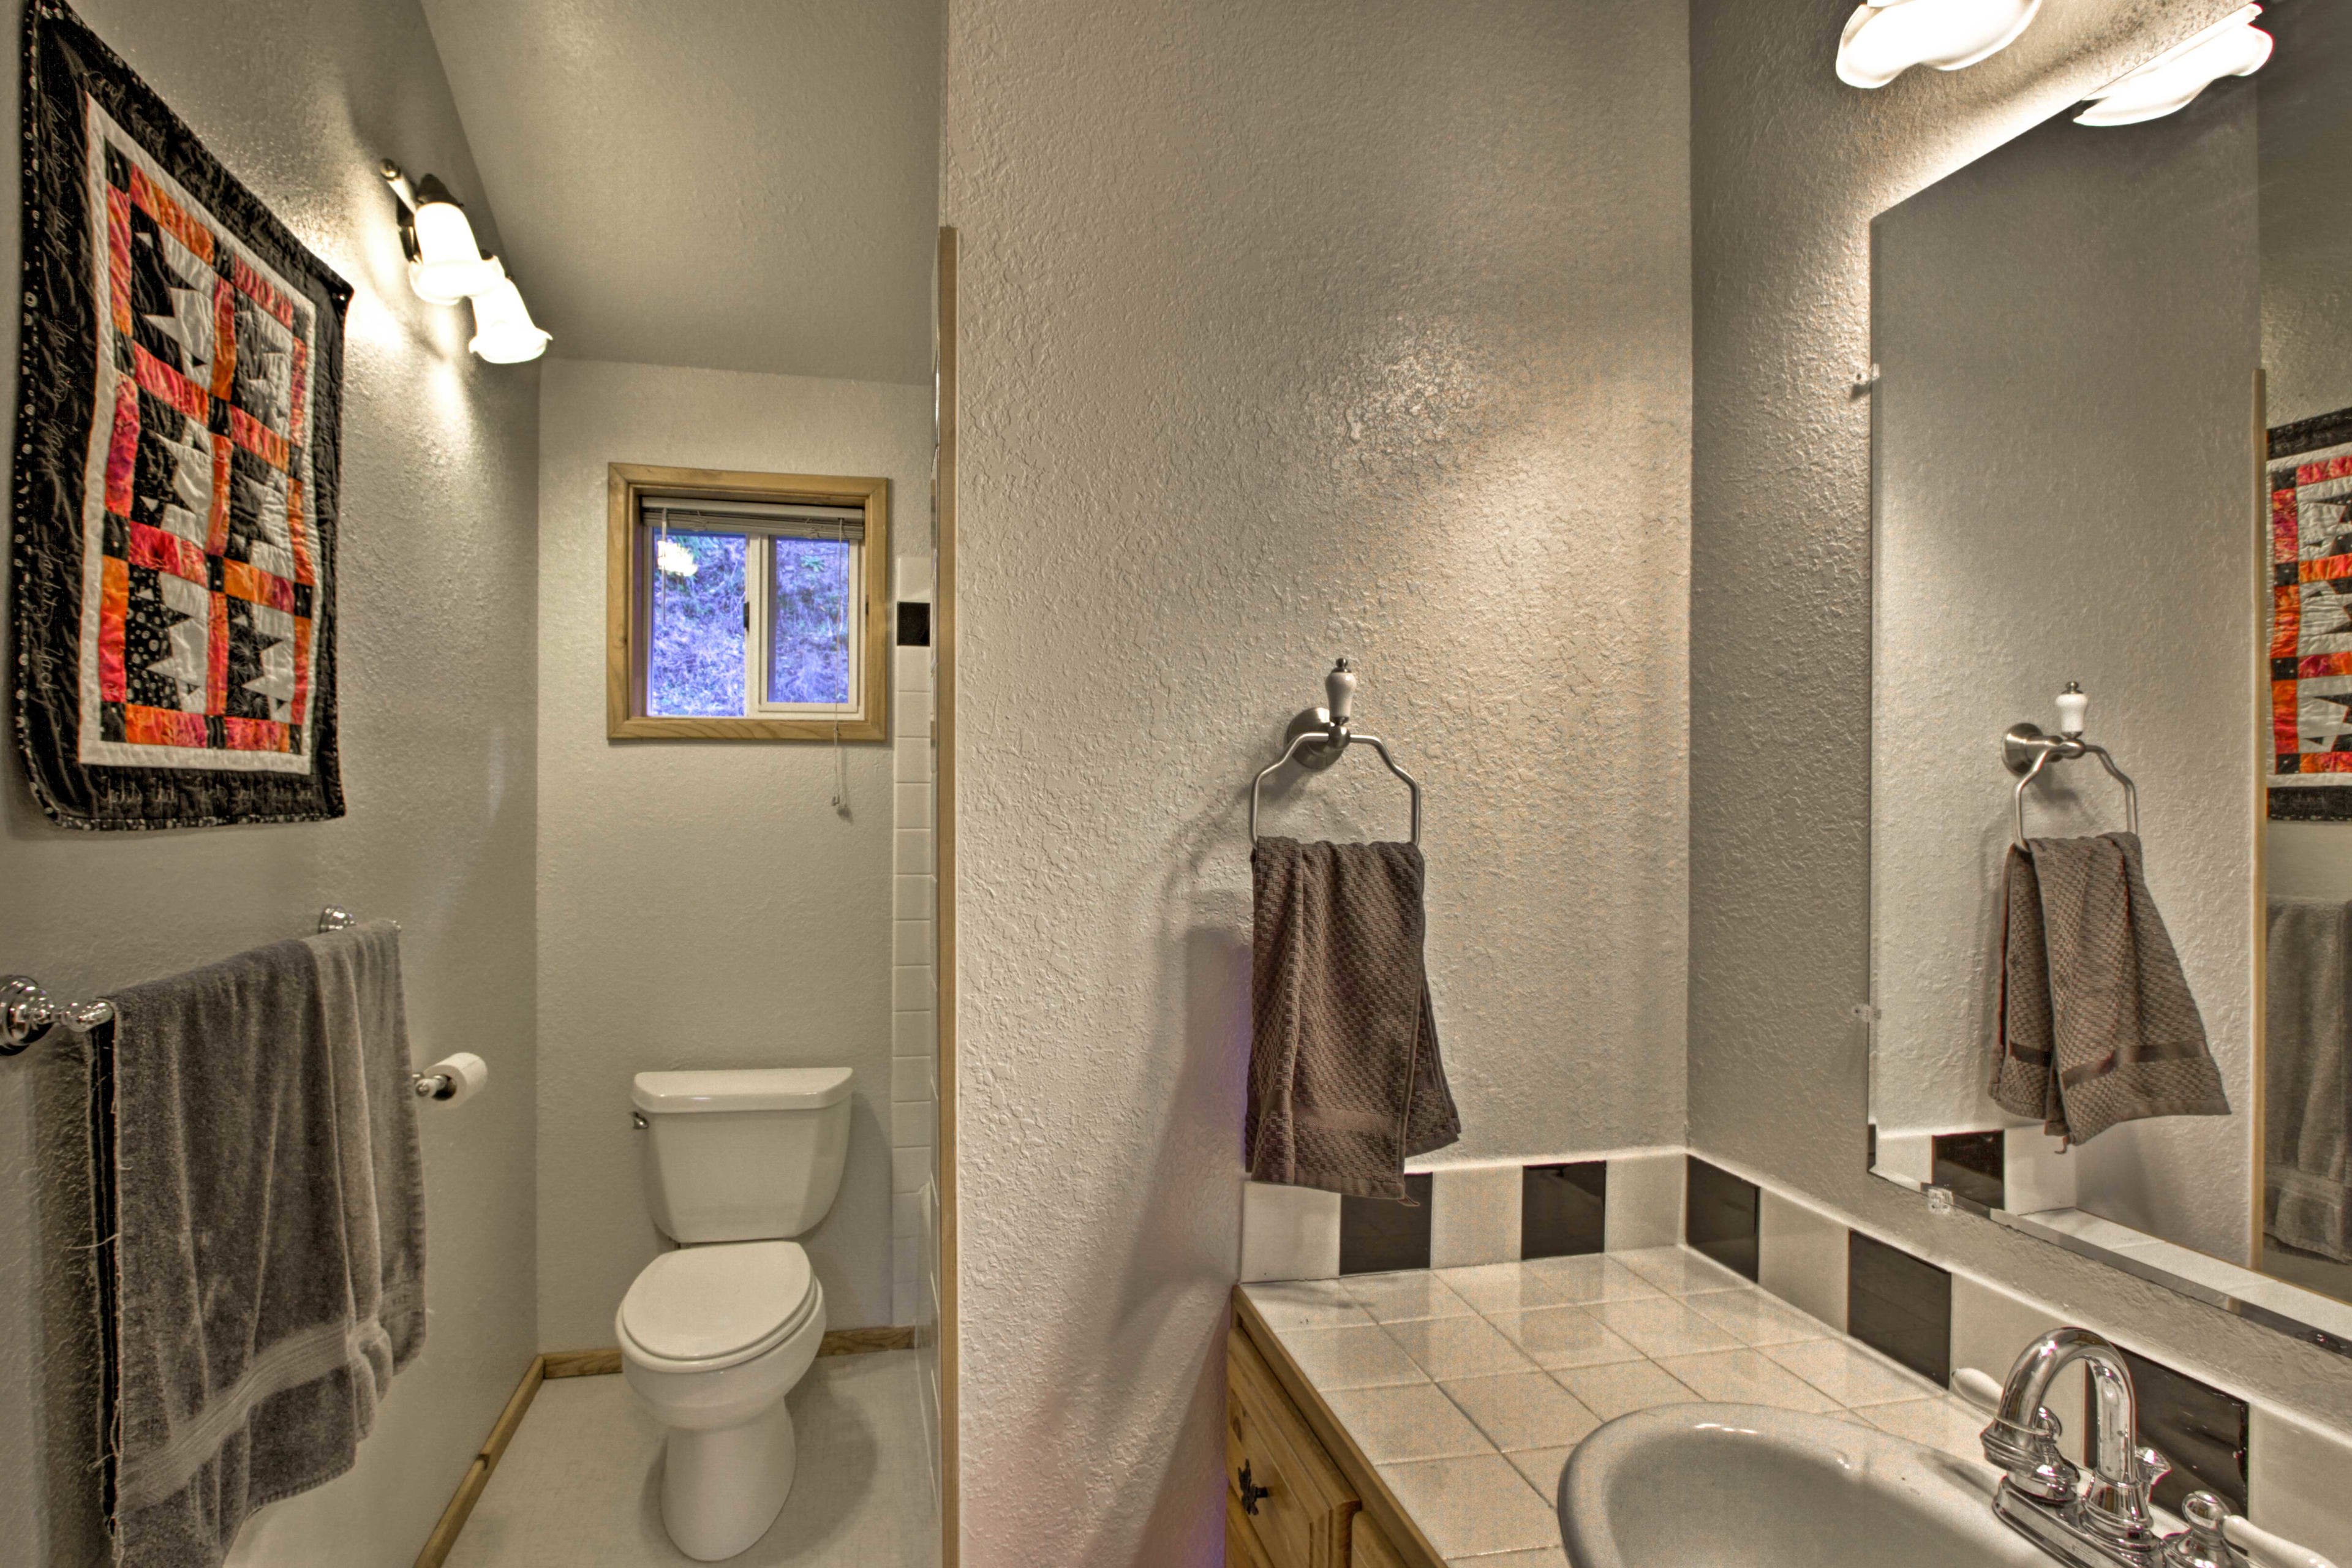 The third full bathroom is outfitted with a shower/tub combo.